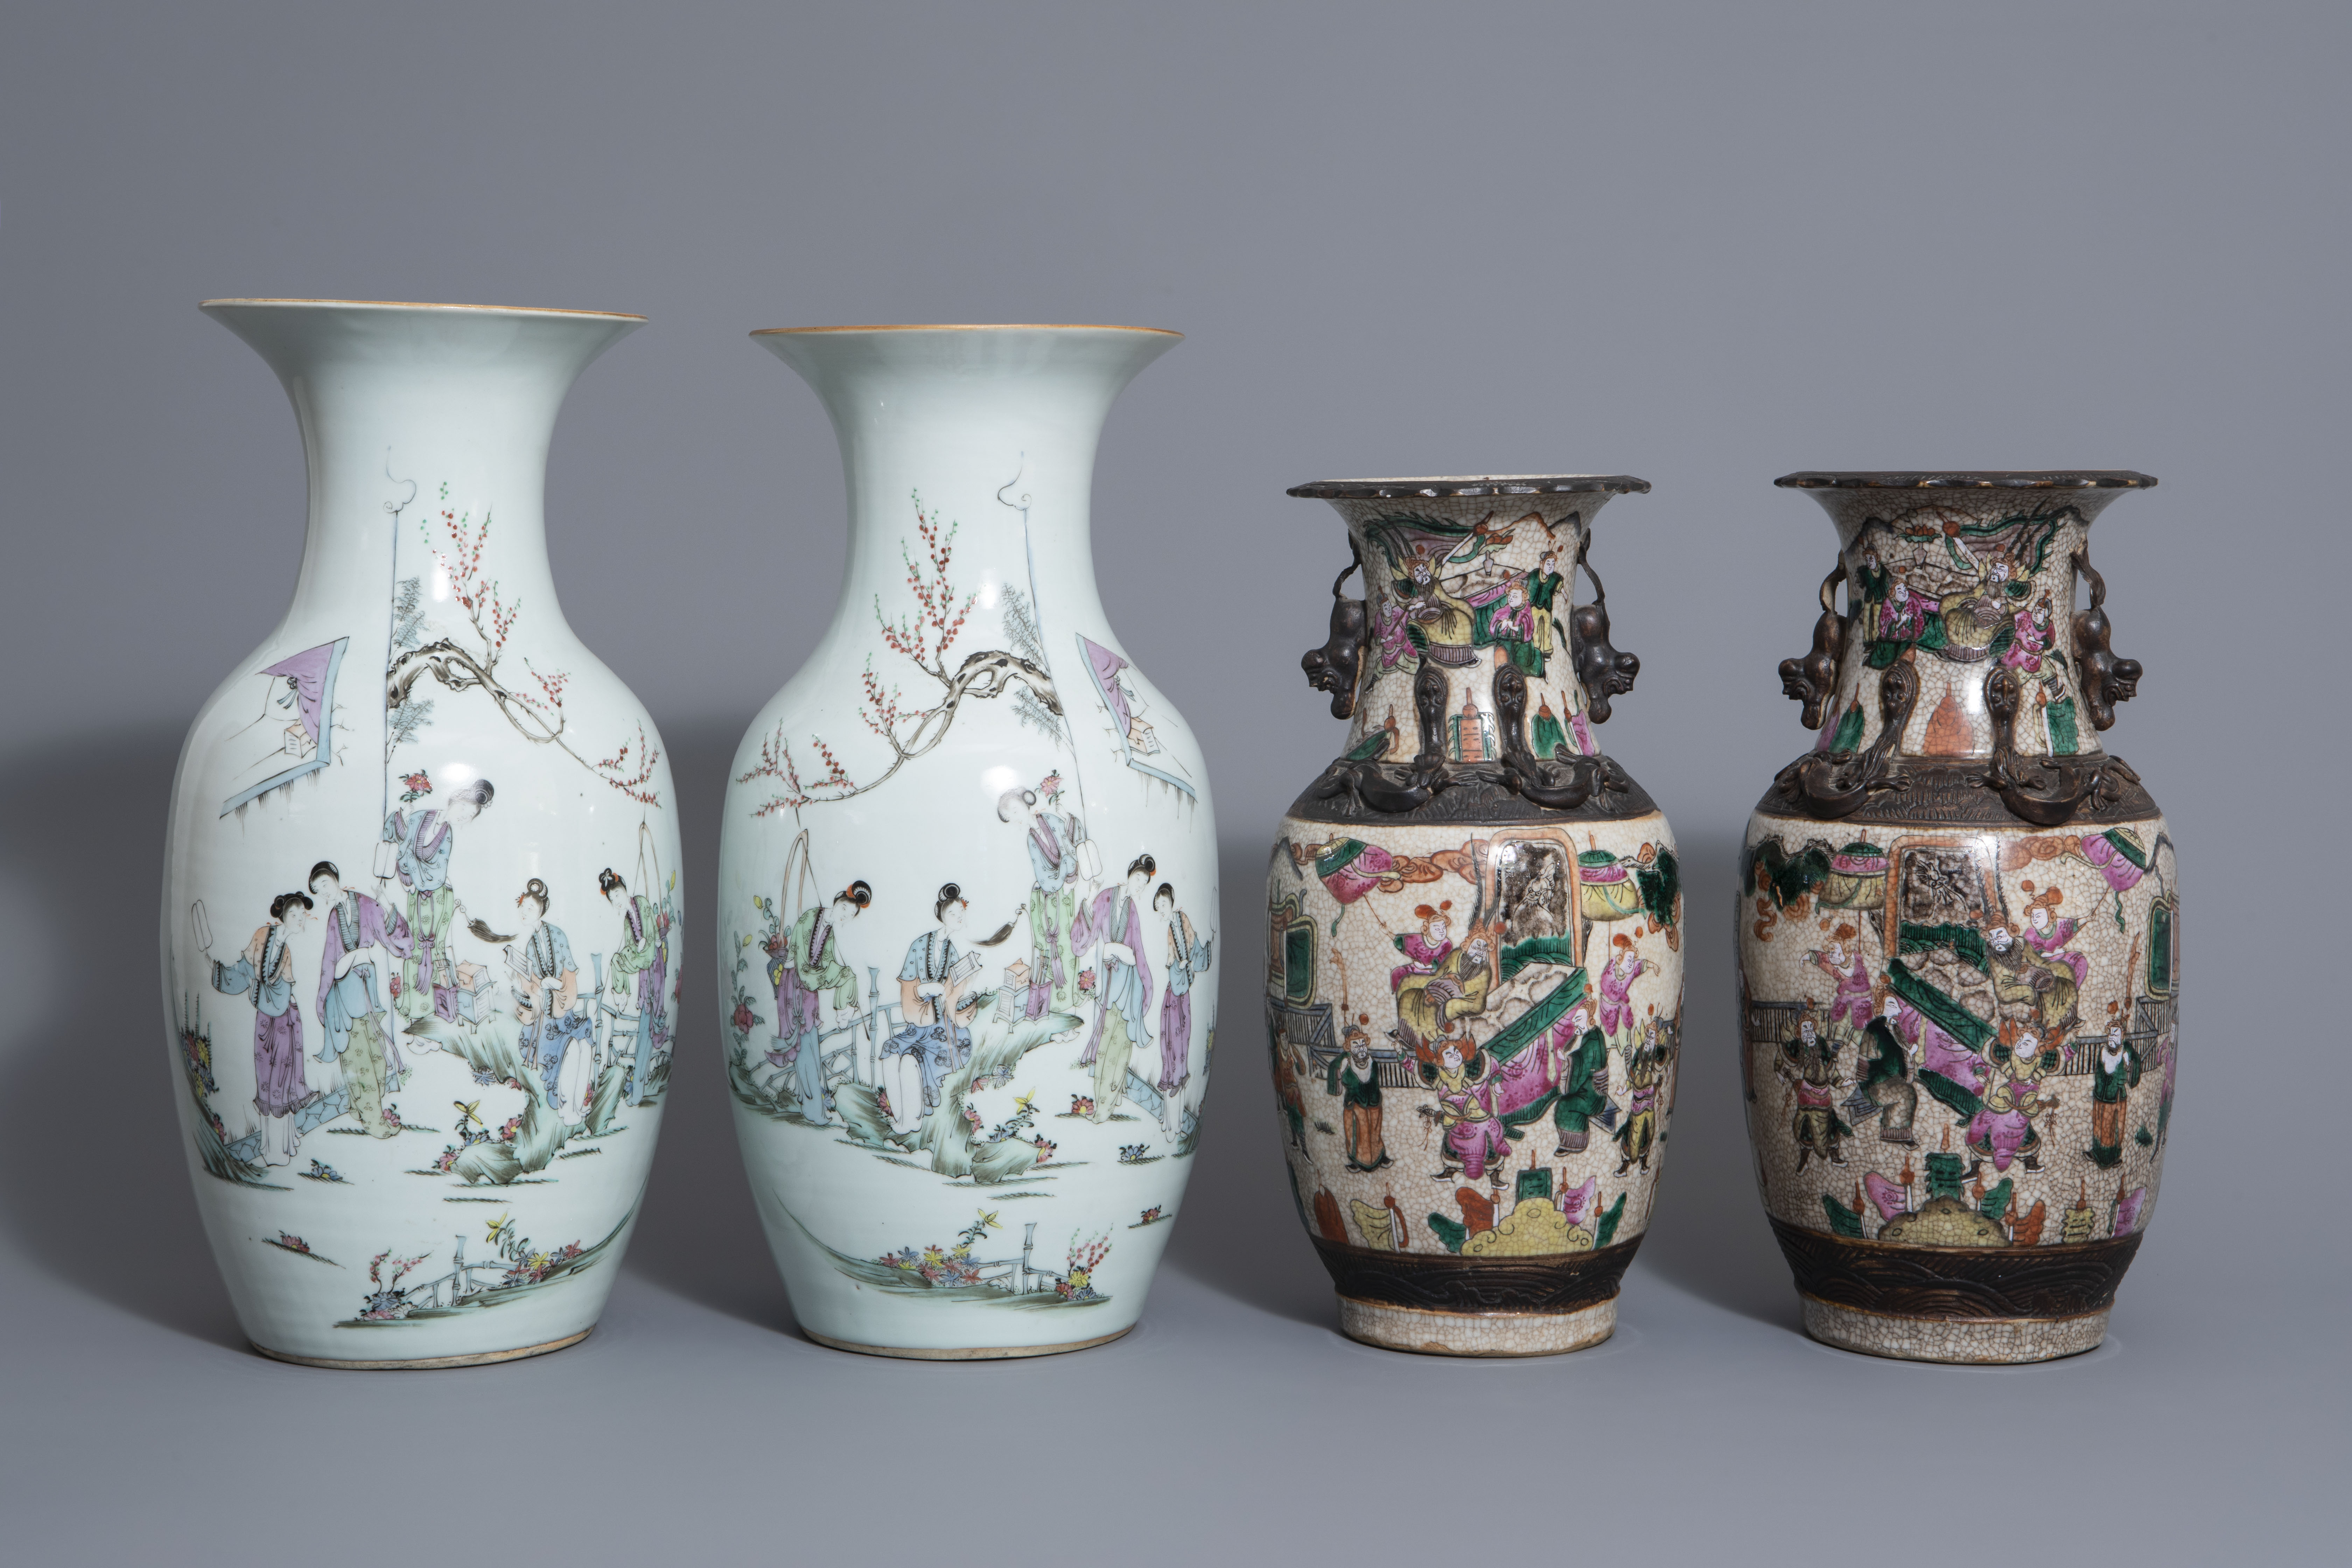 Two pairs of Chinese famille rose and Nanking crackle glazed vases, 19th/20th C. - Image 2 of 7